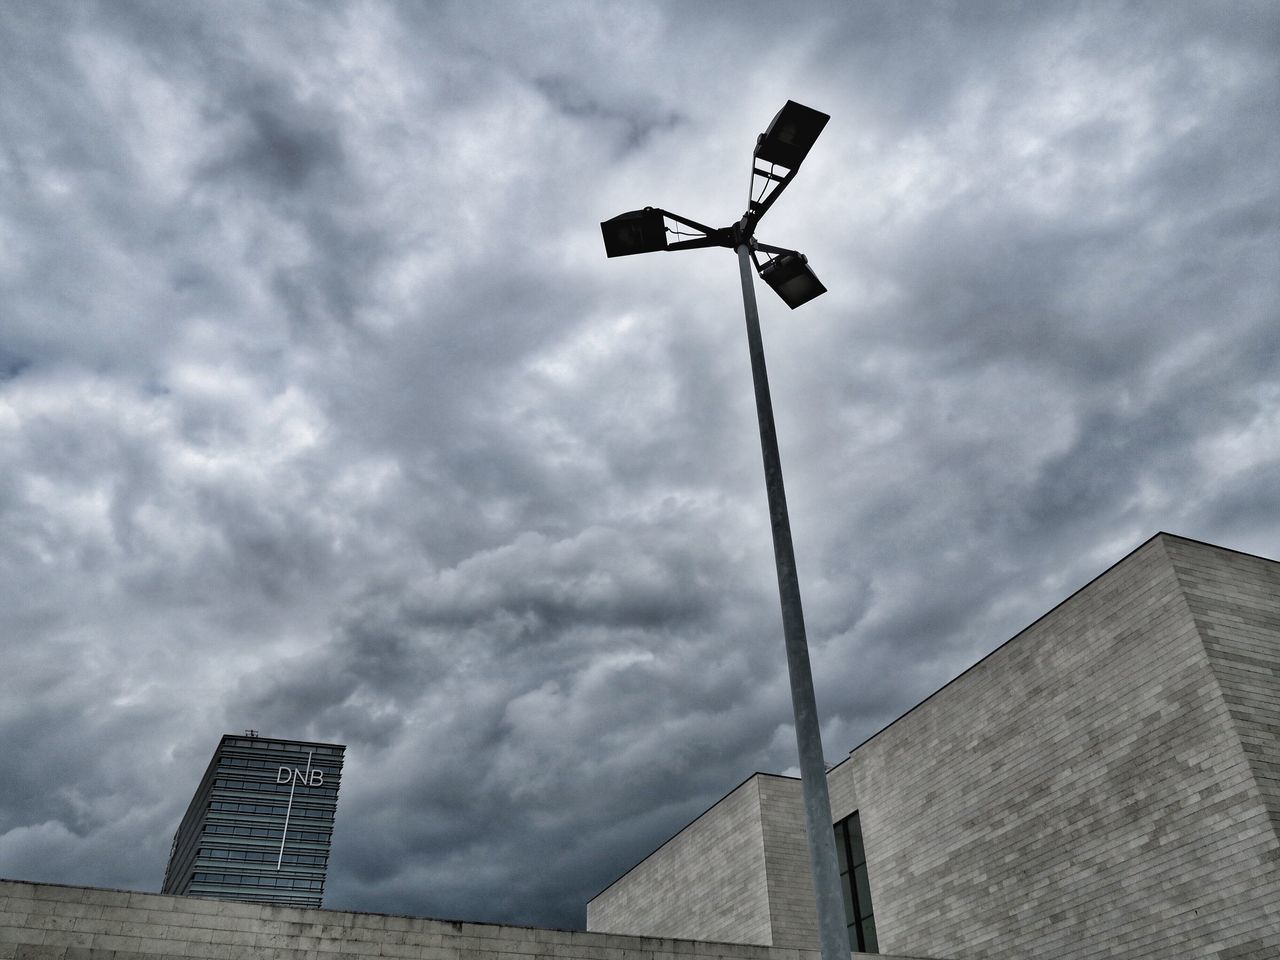 cloud - sky, low angle view, sky, built structure, architecture, building exterior, outdoors, day, no people, storm cloud